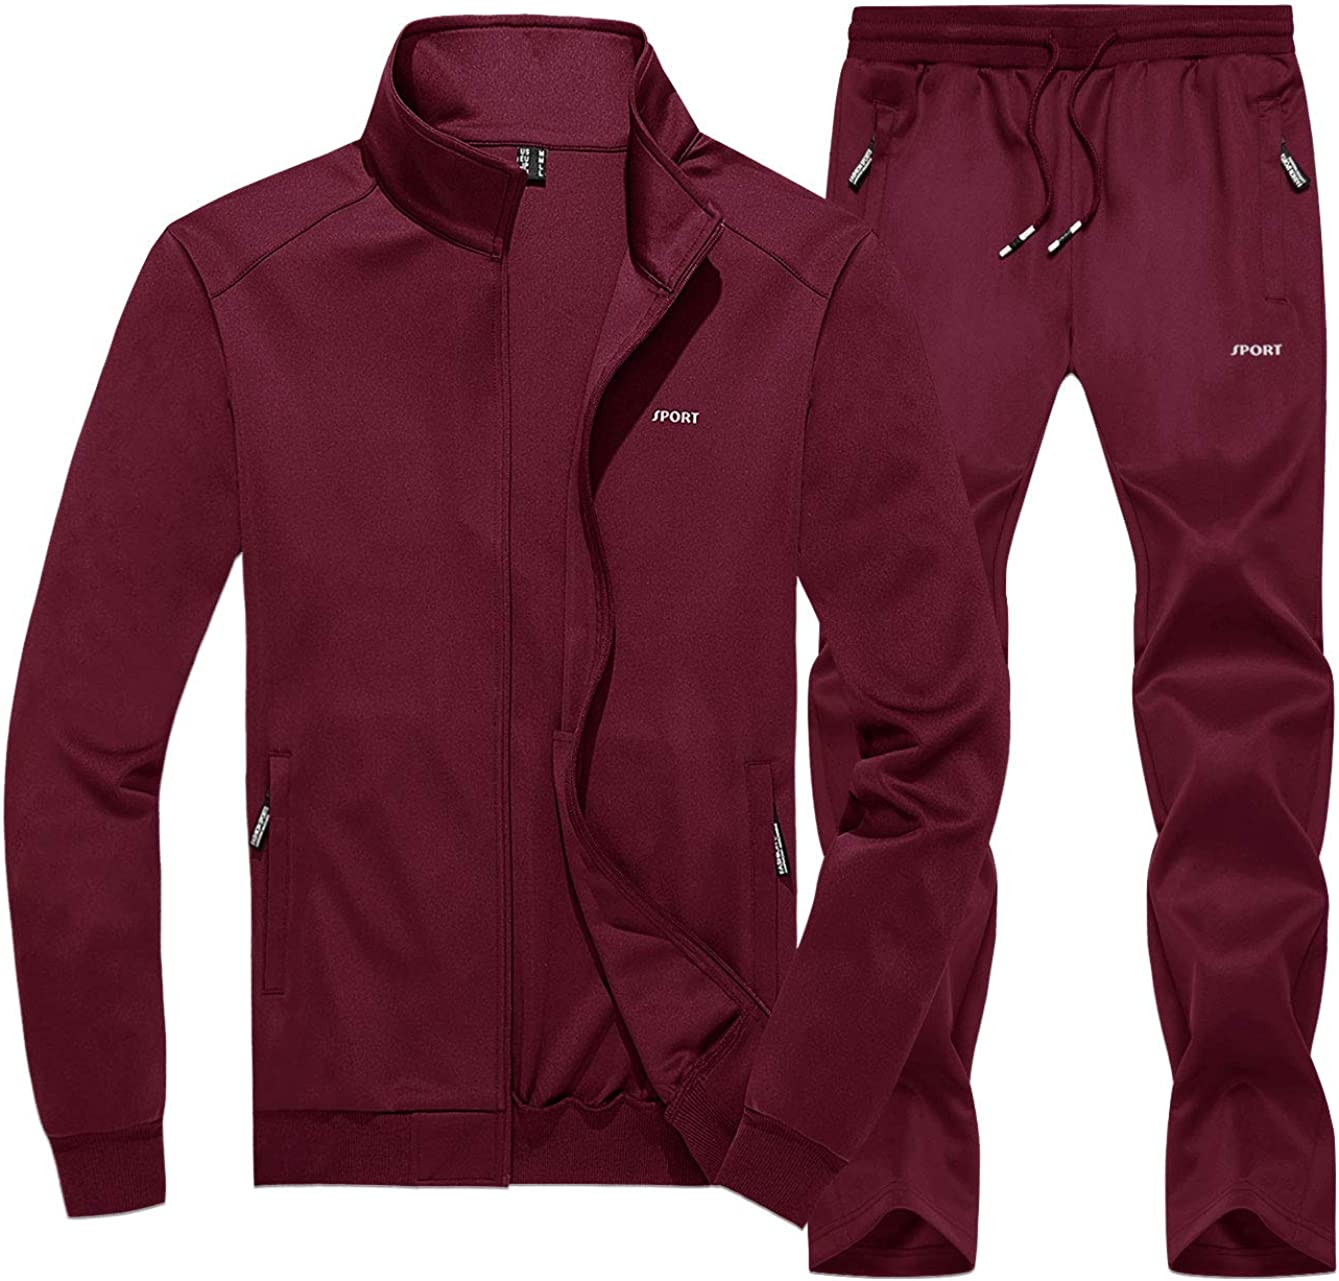 CRYSULLY Men's Tracksuits Long Sleeve Running Max It is very popular 61% OFF Zip A Jogging Full